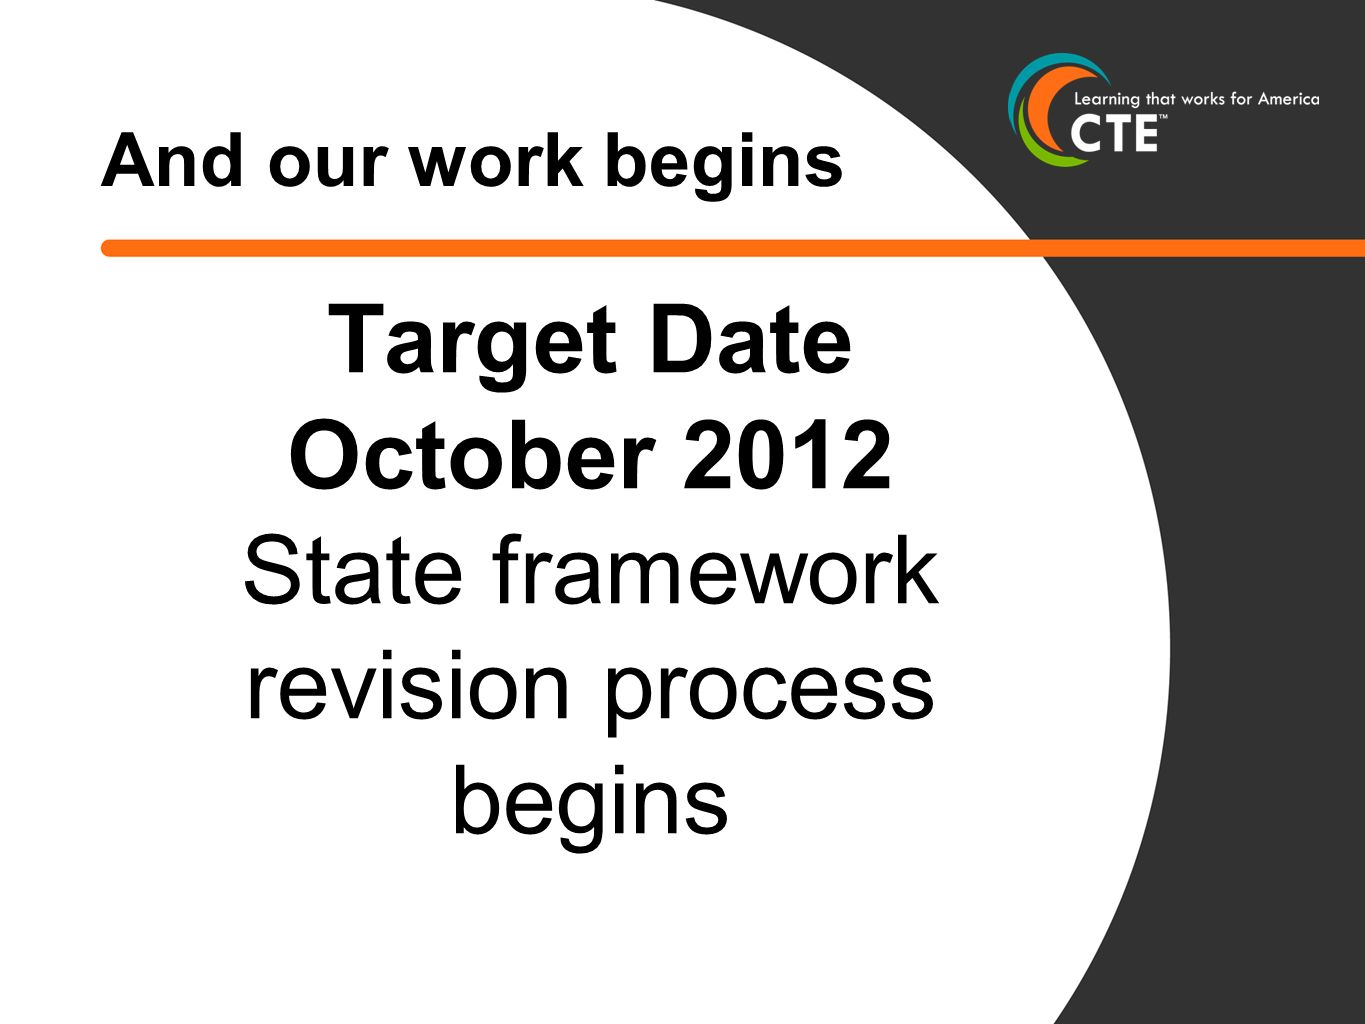 And our work begins Target Date October 2012 State framework revision process begins